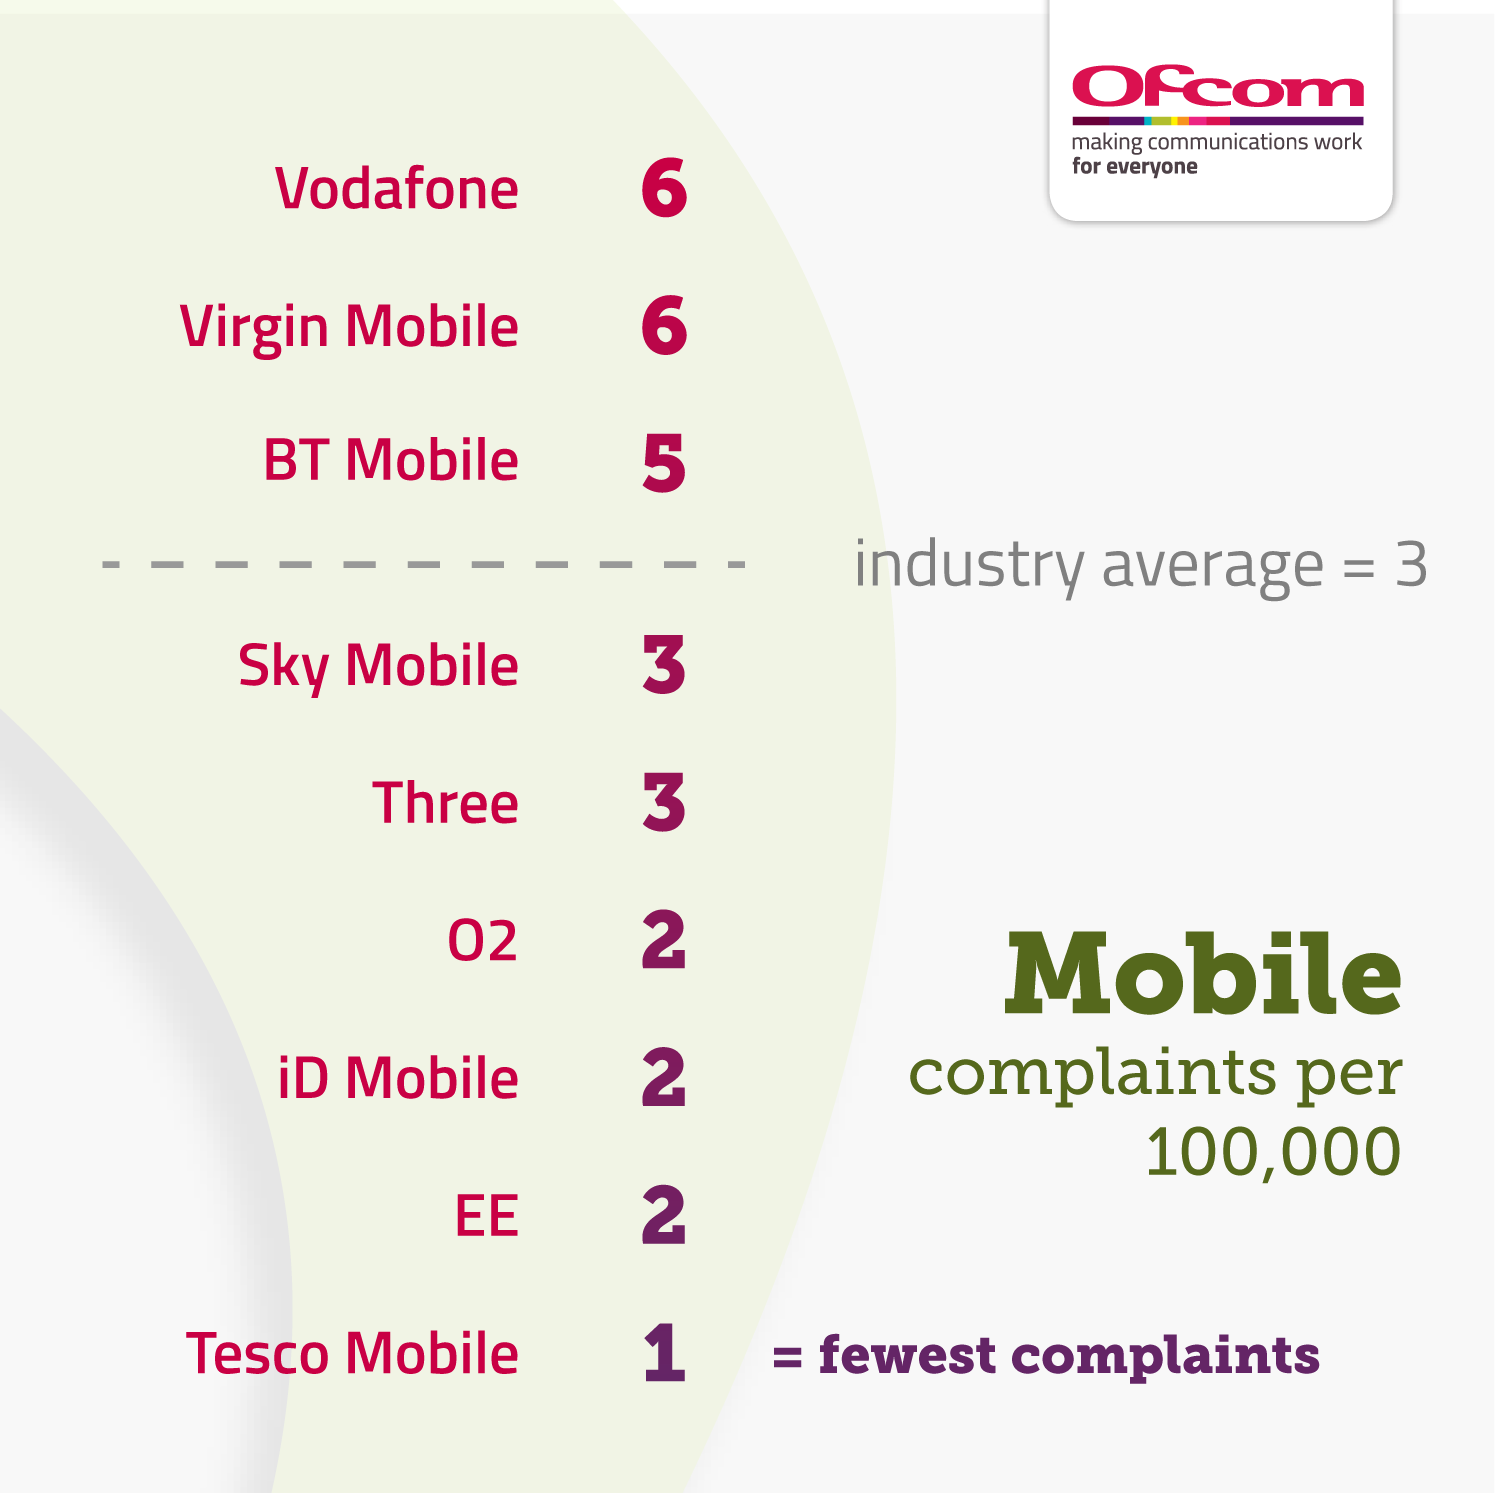 Pay-monthly mobile complaints per 100,000 subscribers:  Vodafone 6 Virgin Mobile 6 BT Mobile 5 Industry average 3 Sky mobile 3 Three 3 O2 2 iD mobile 2 EE 2 Tesco Mobile 1